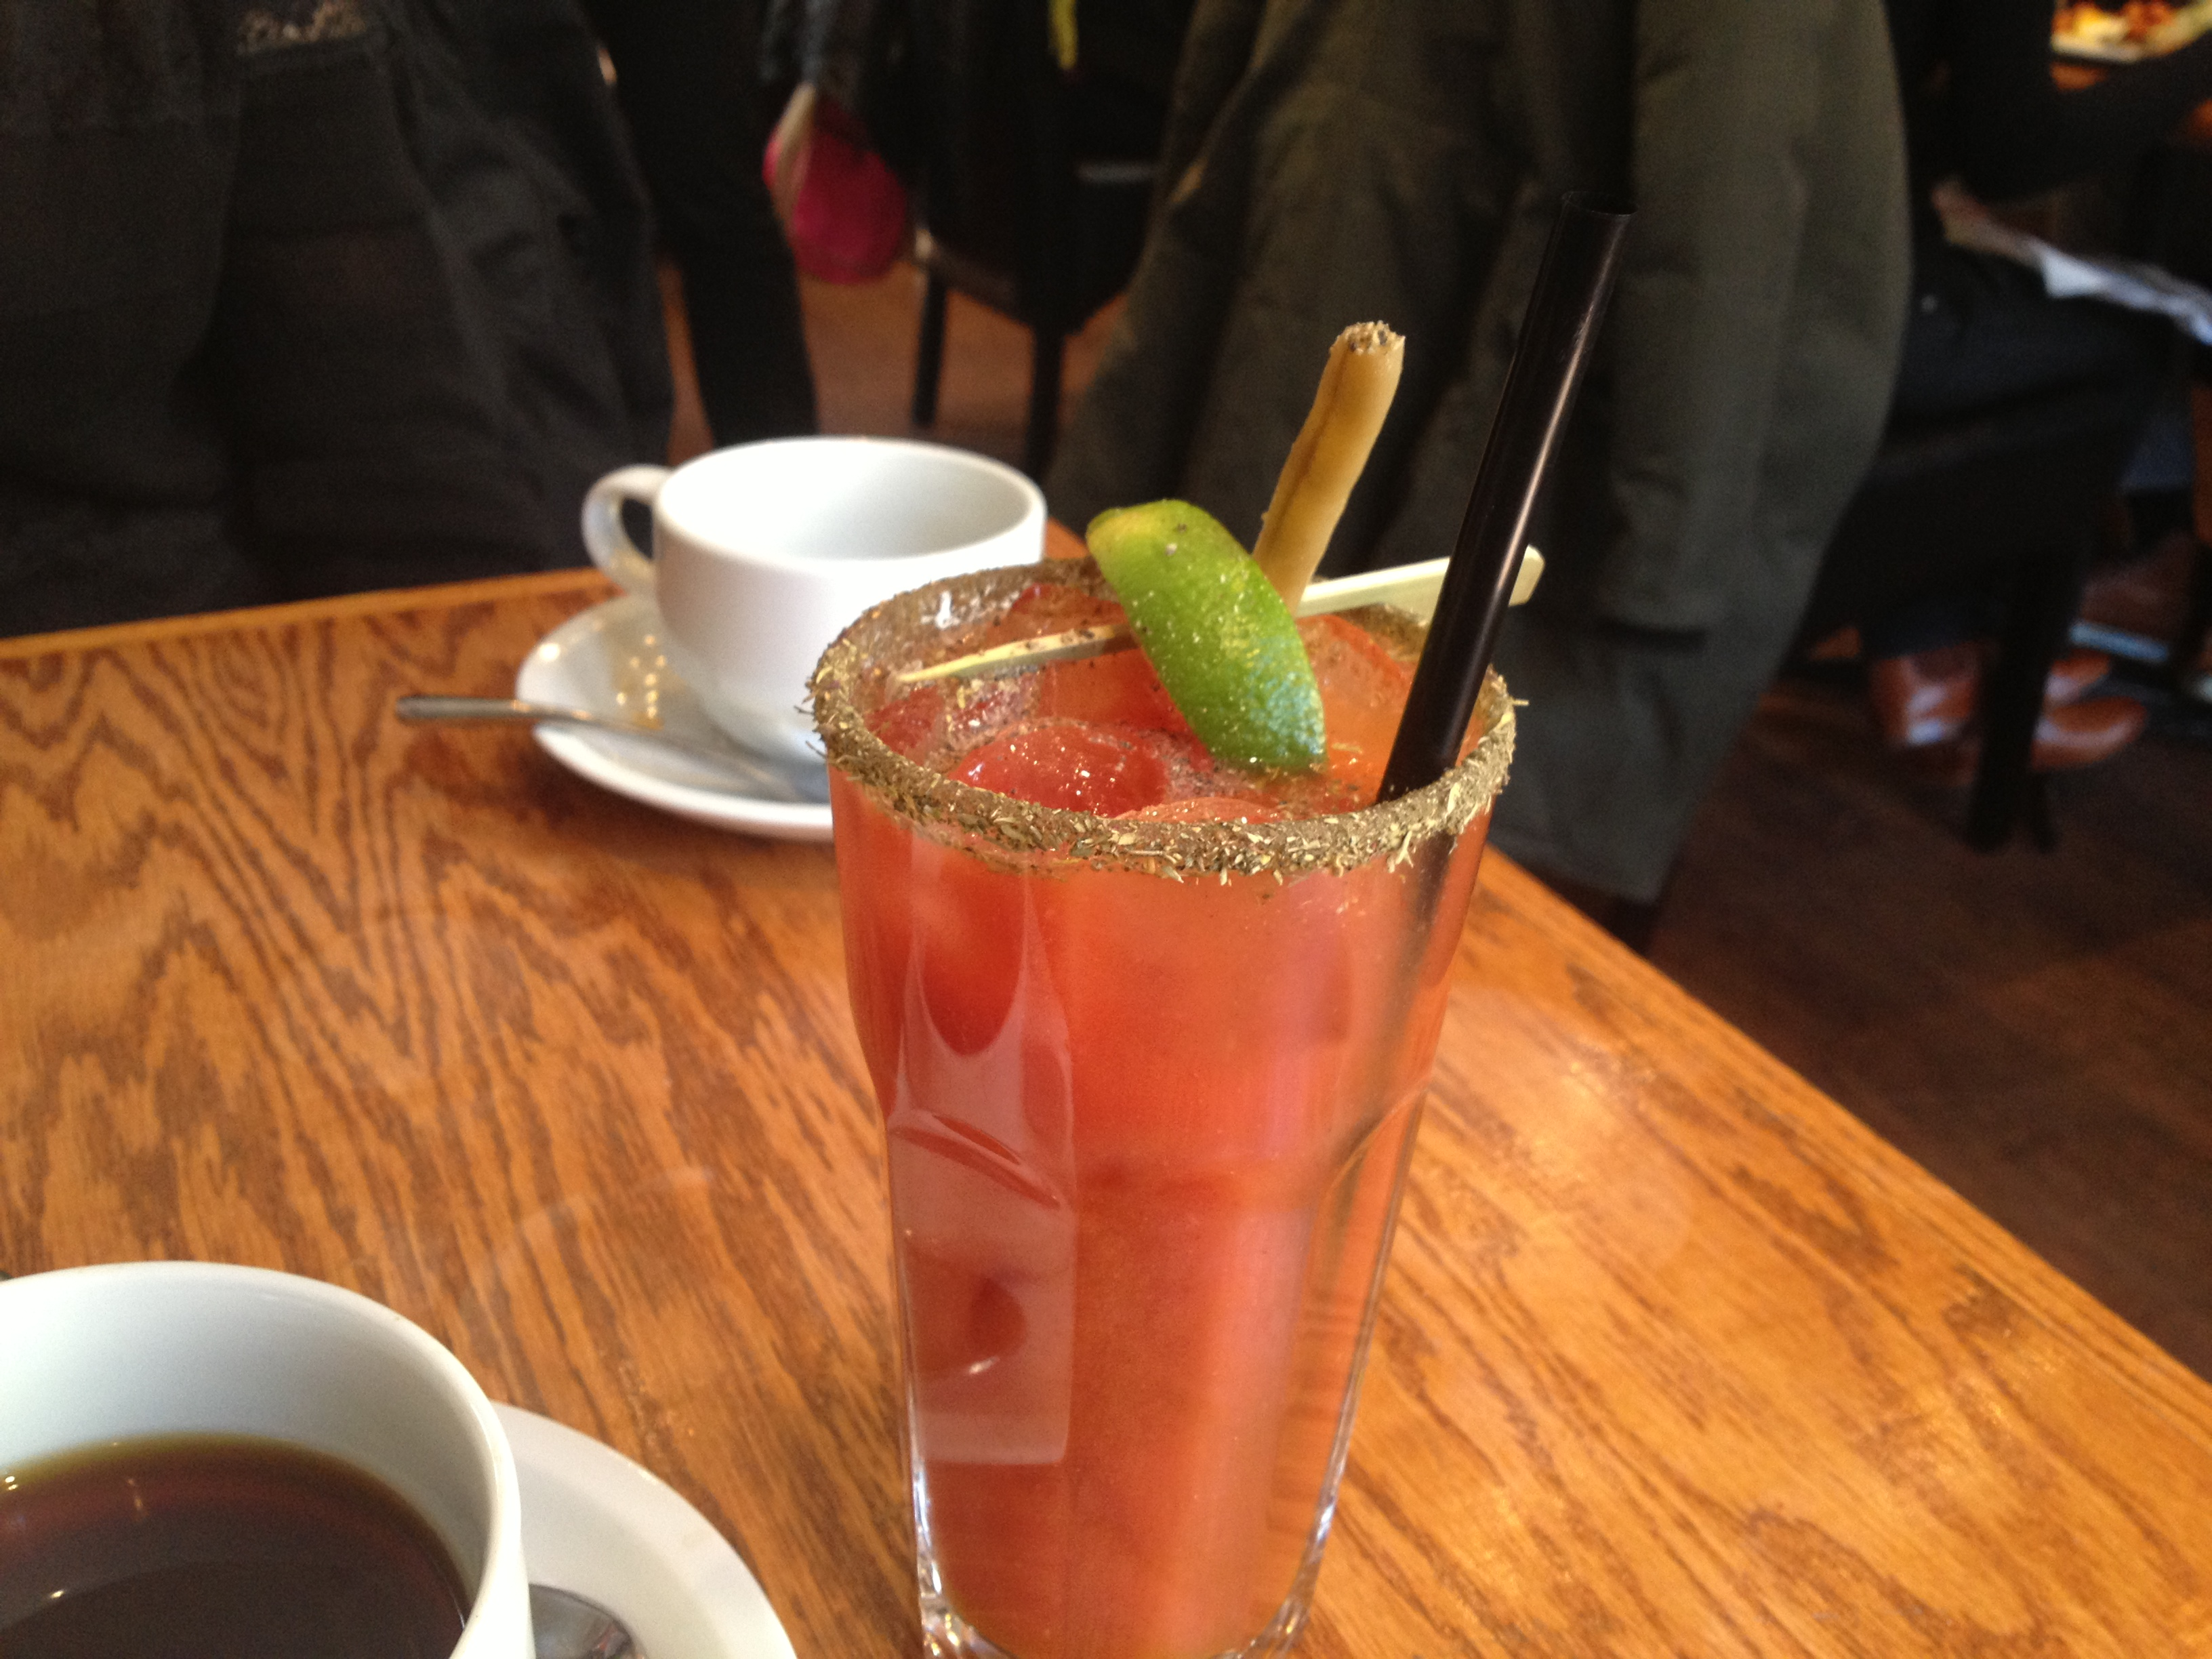 The Cure: $5 Caesar to start my morning